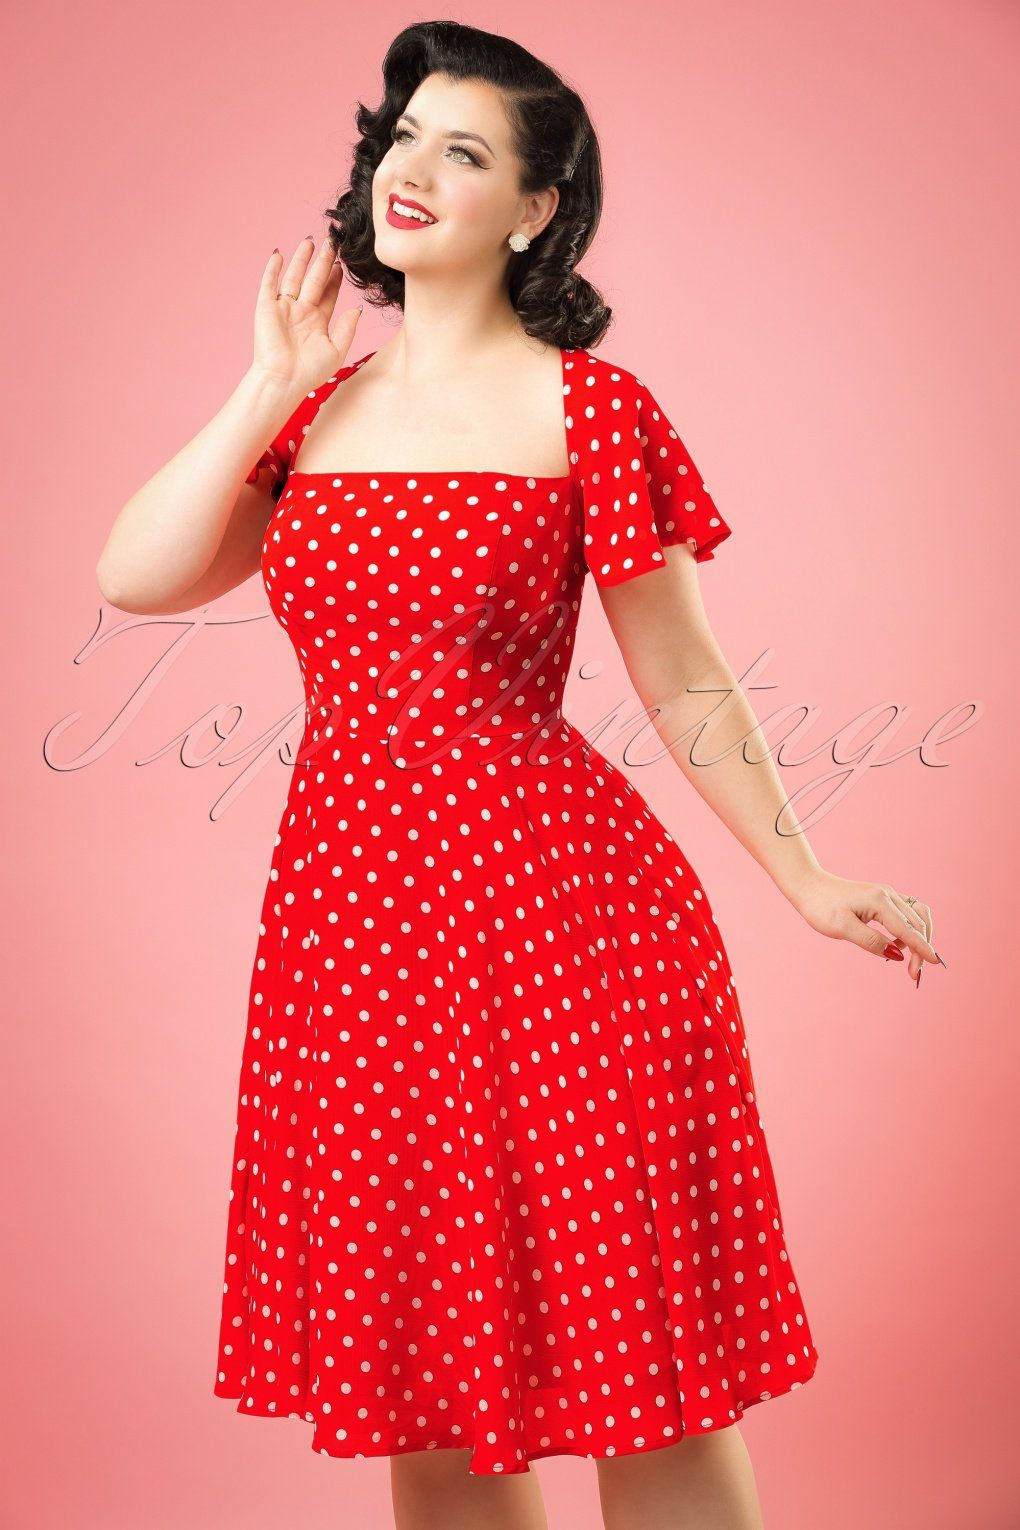 Vintage Style Dresses 30s, 40s, 50s, and 60s